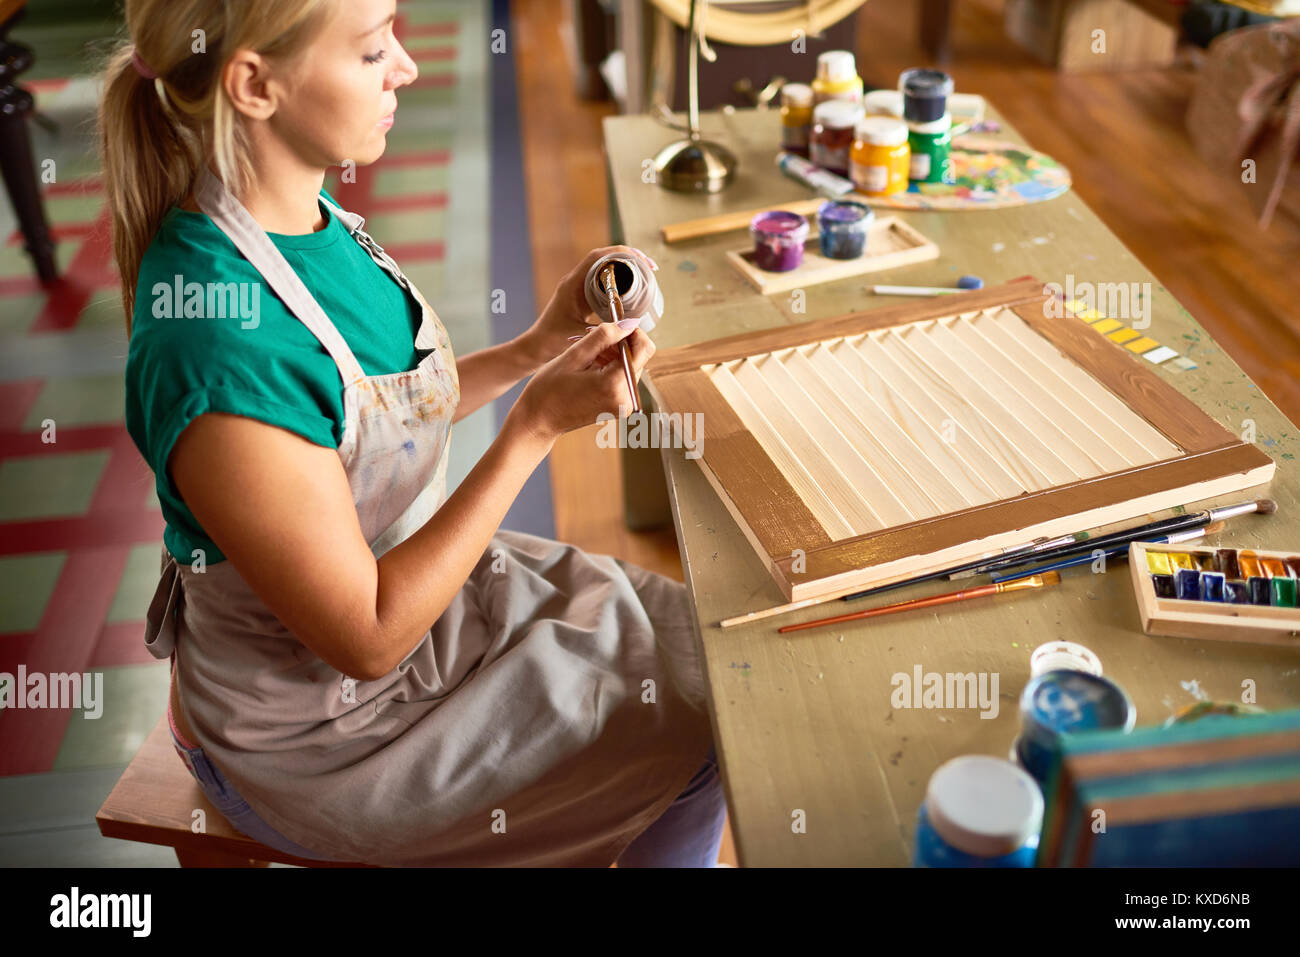 Young Female Artist Working in Studio - Stock Image